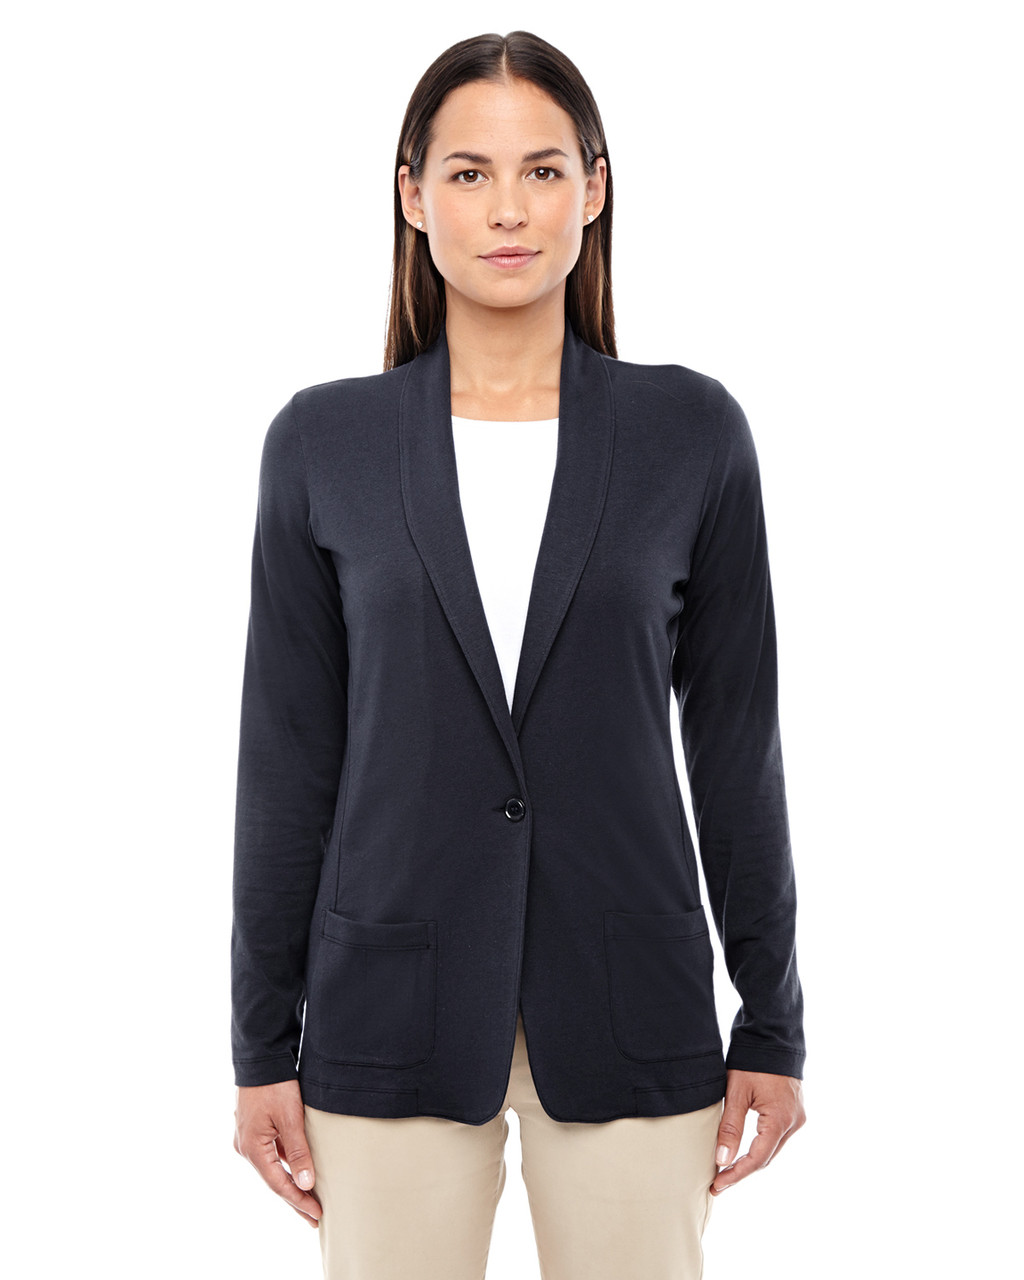 Black - DP462W Devon & Jones Ladies' Perfect Fit Shawl Collar Cardigan